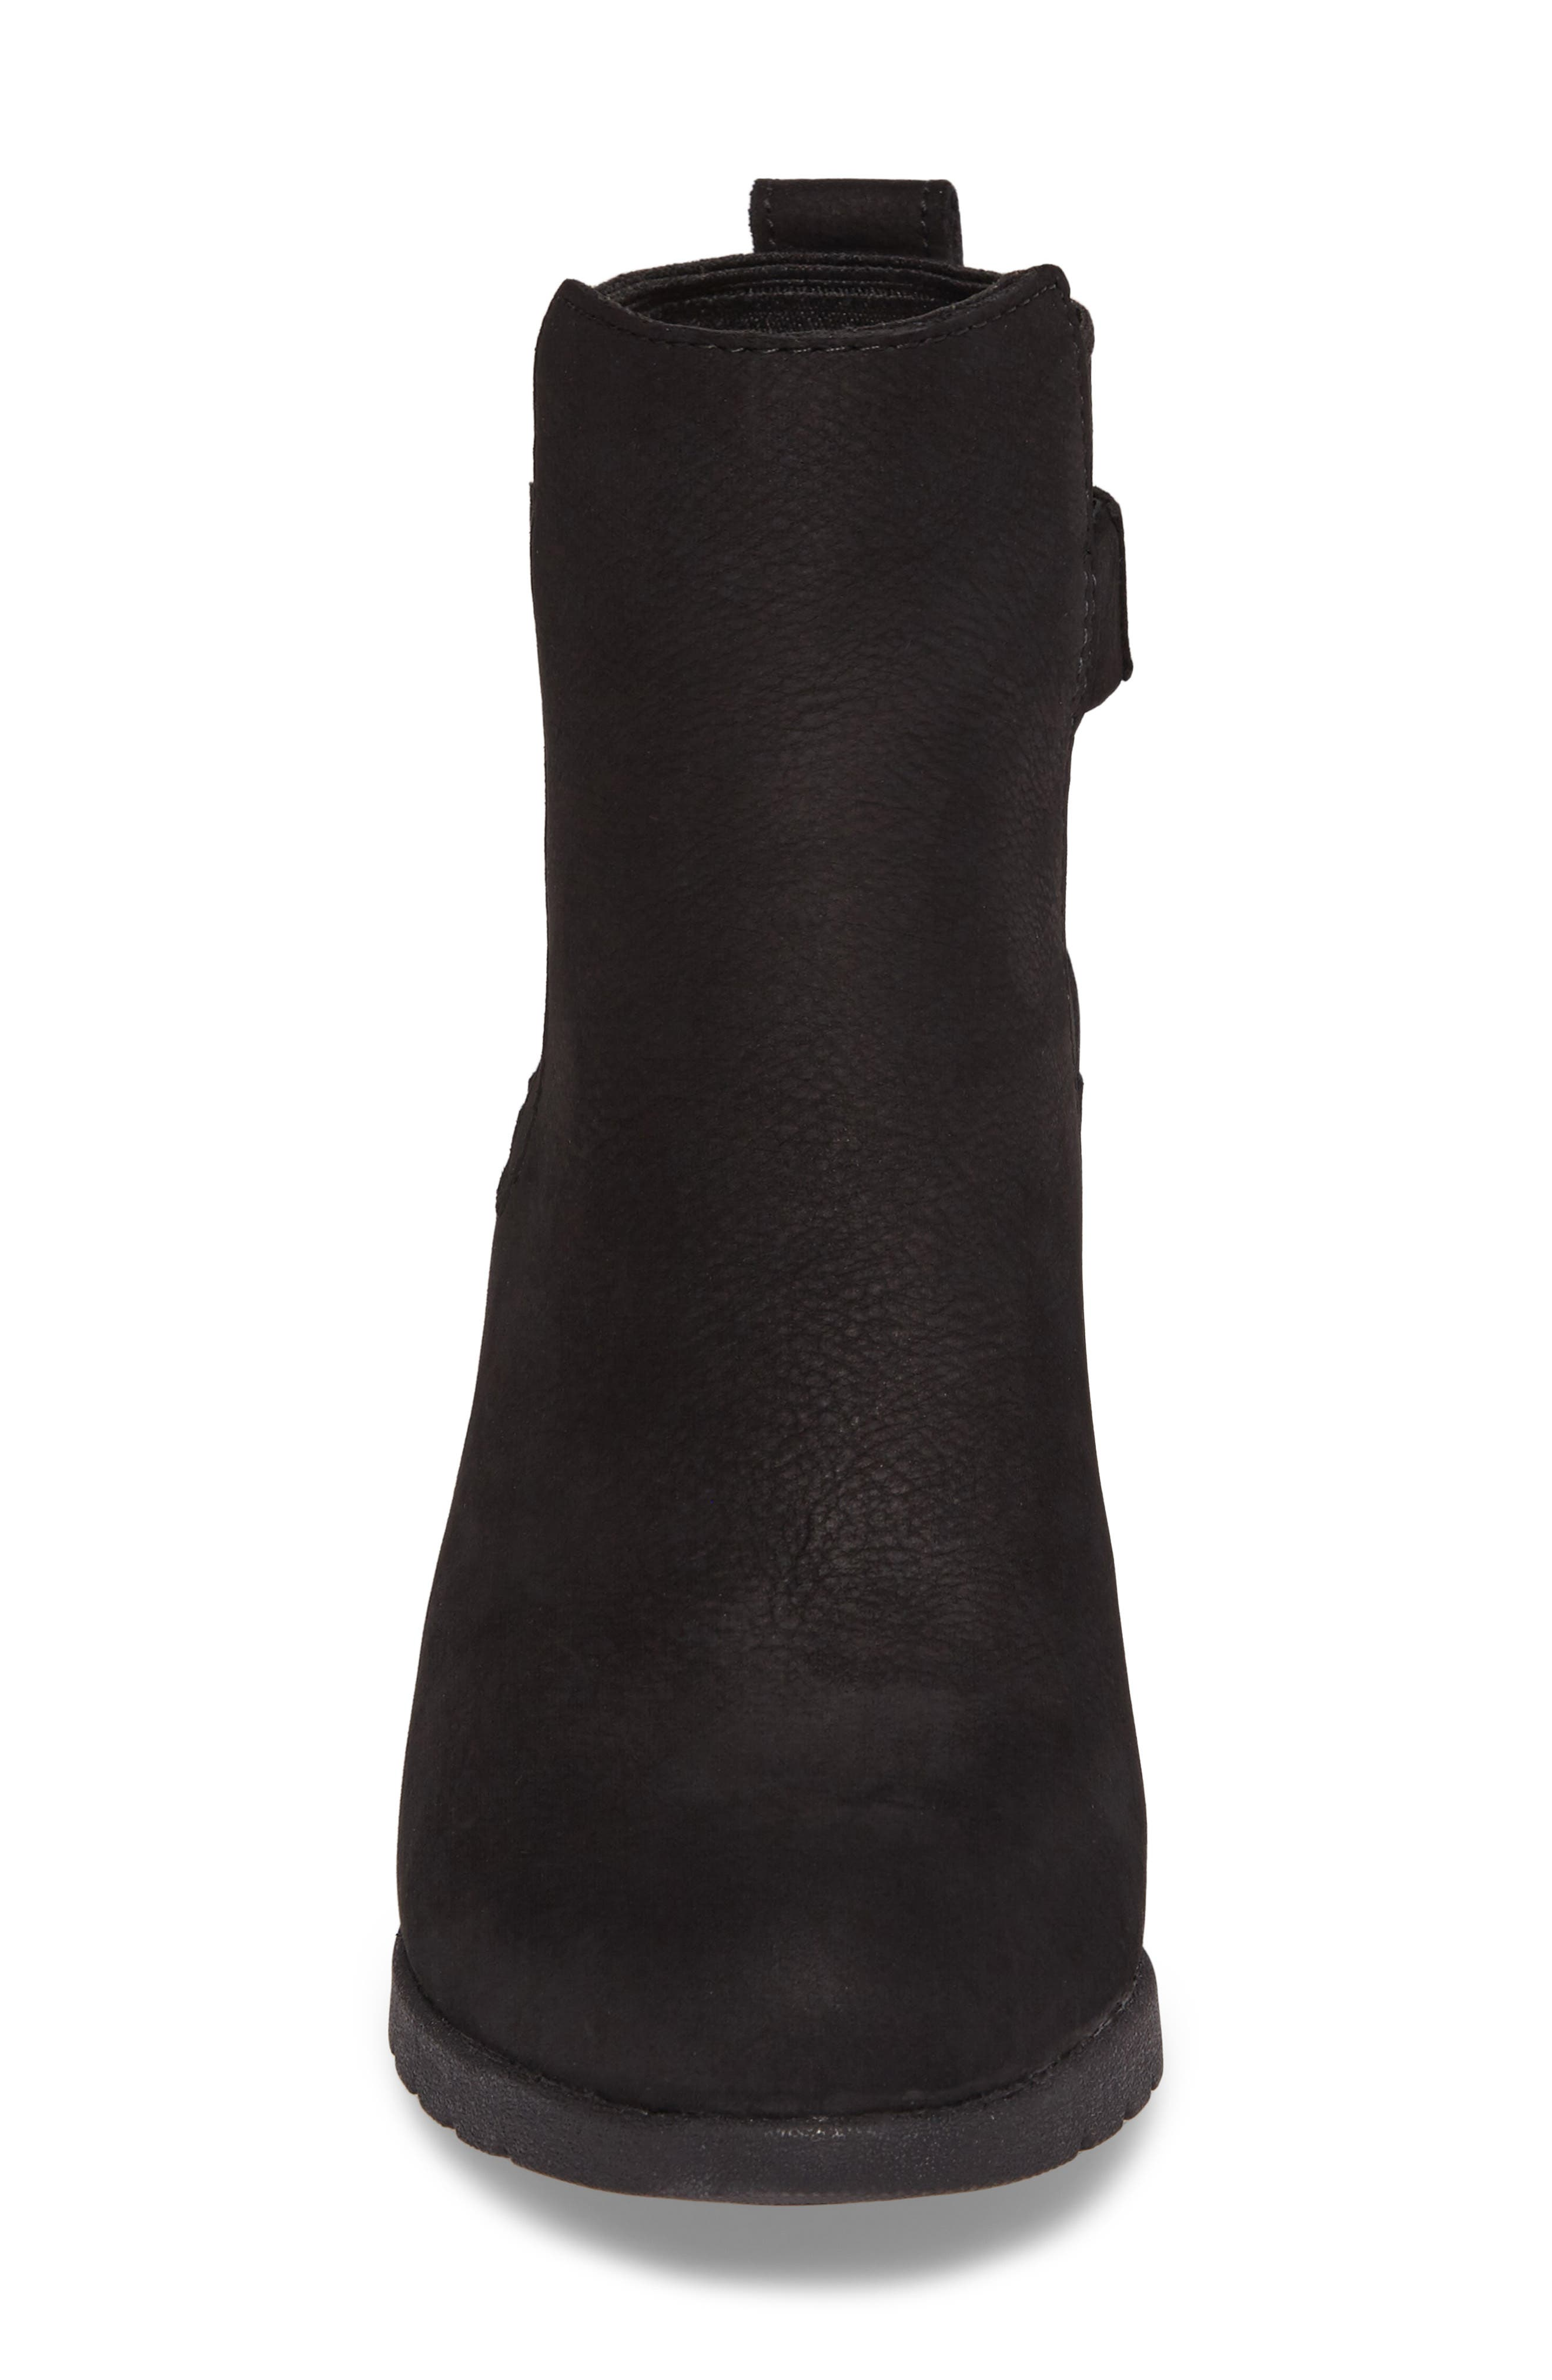 Waterproof Insulated Wedge Boot,                             Alternate thumbnail 4, color,                             BLACK LEATHER